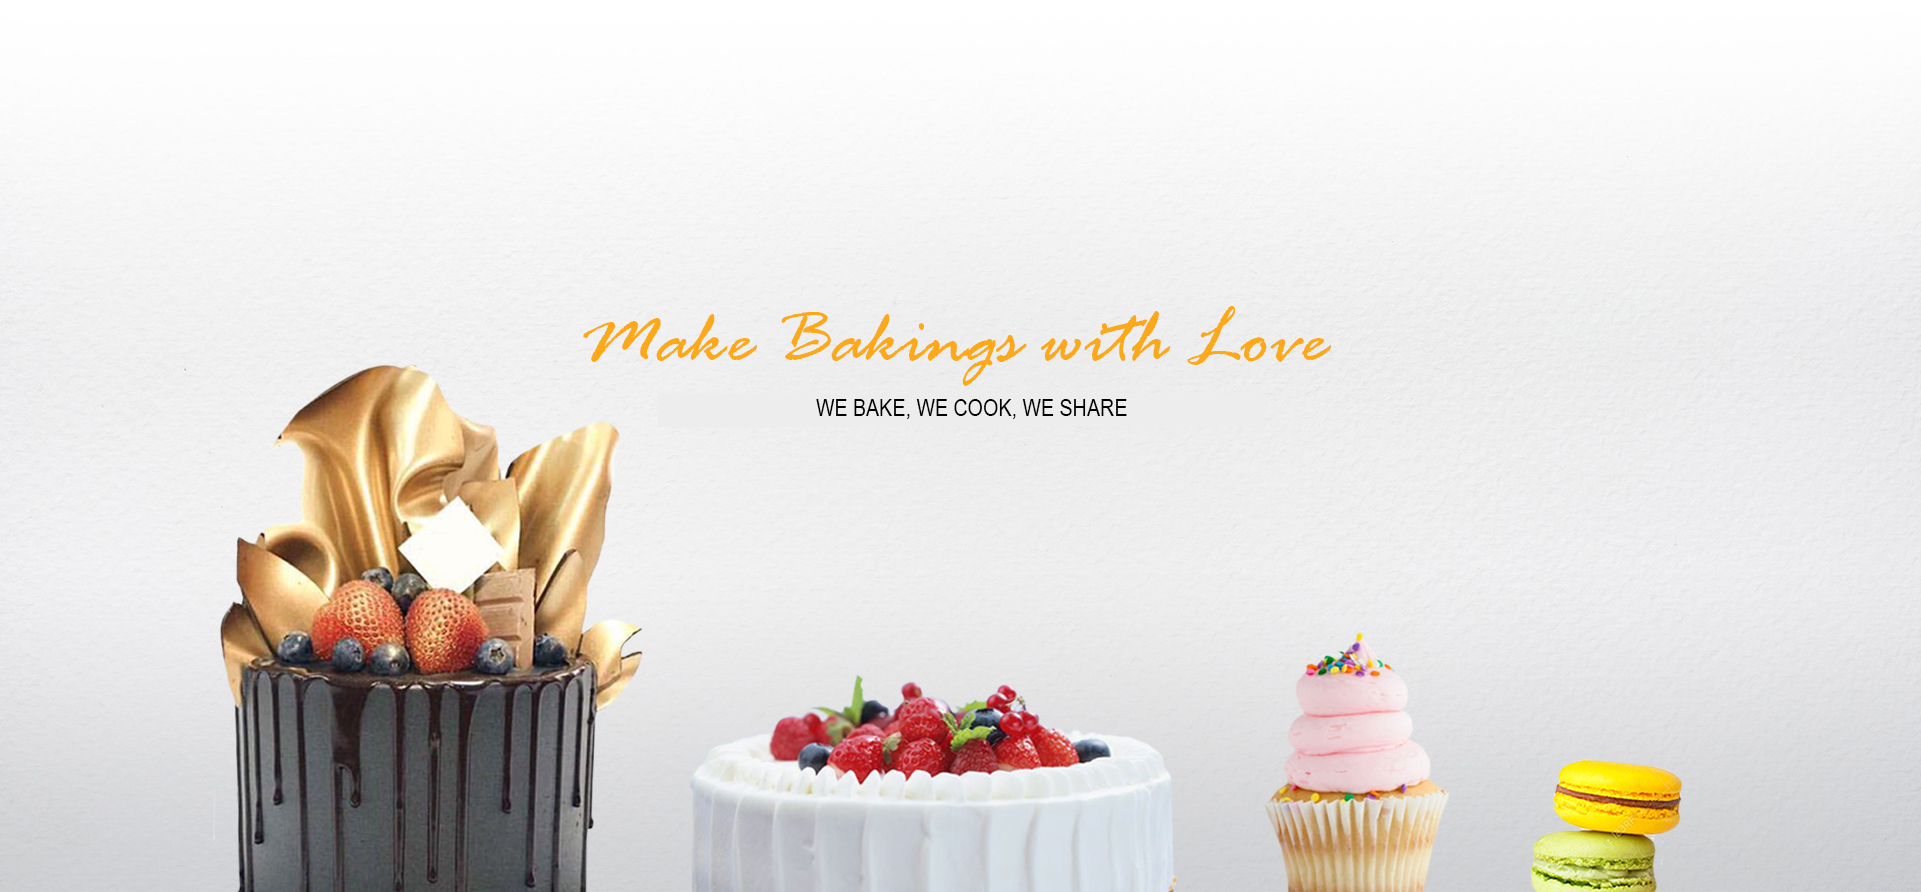 We Bake, We Cook, We Share!